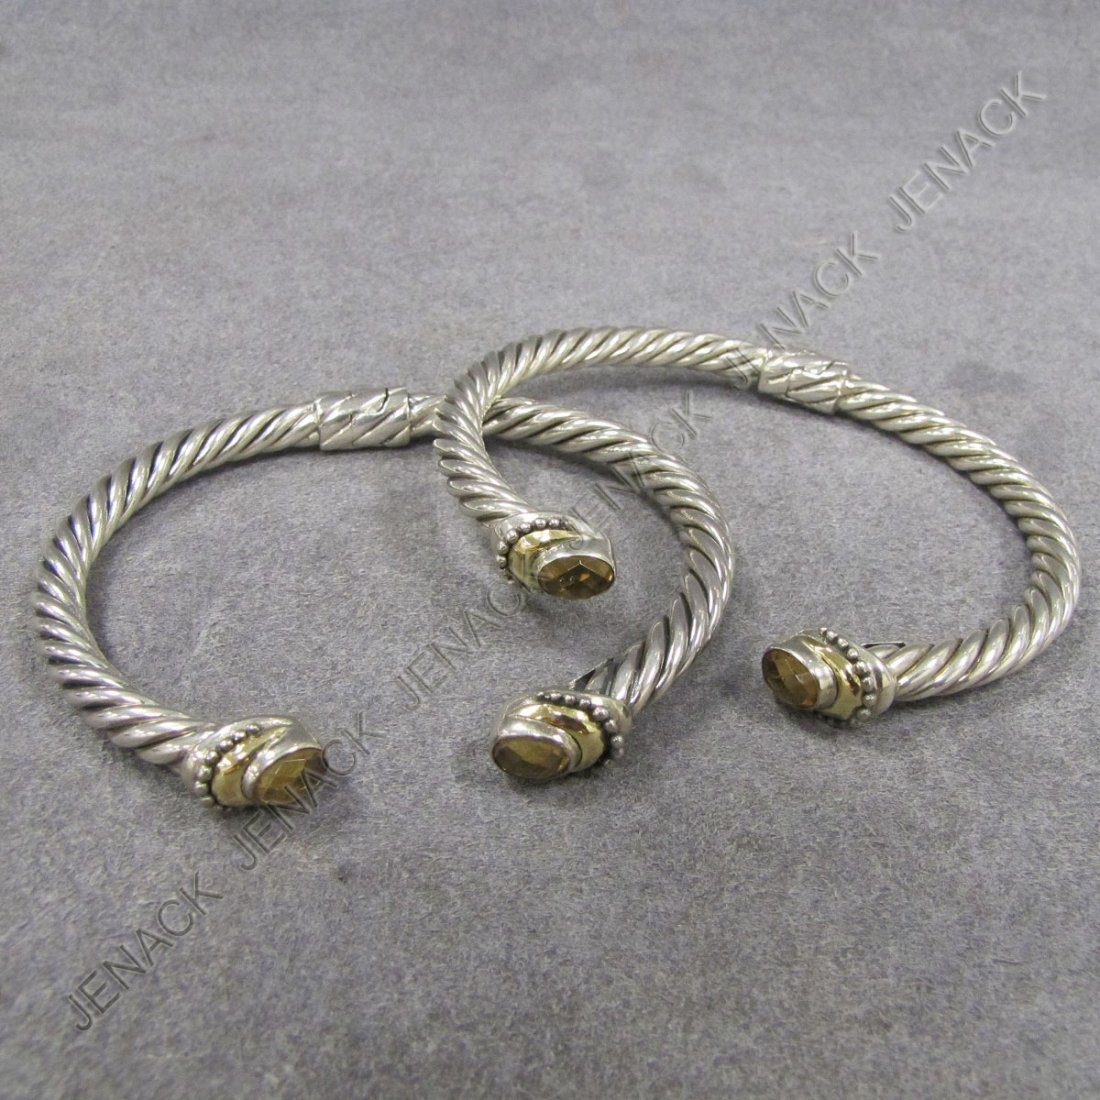 5: PAIR STERLING AND 18K HINGED CUFF BRACELETS